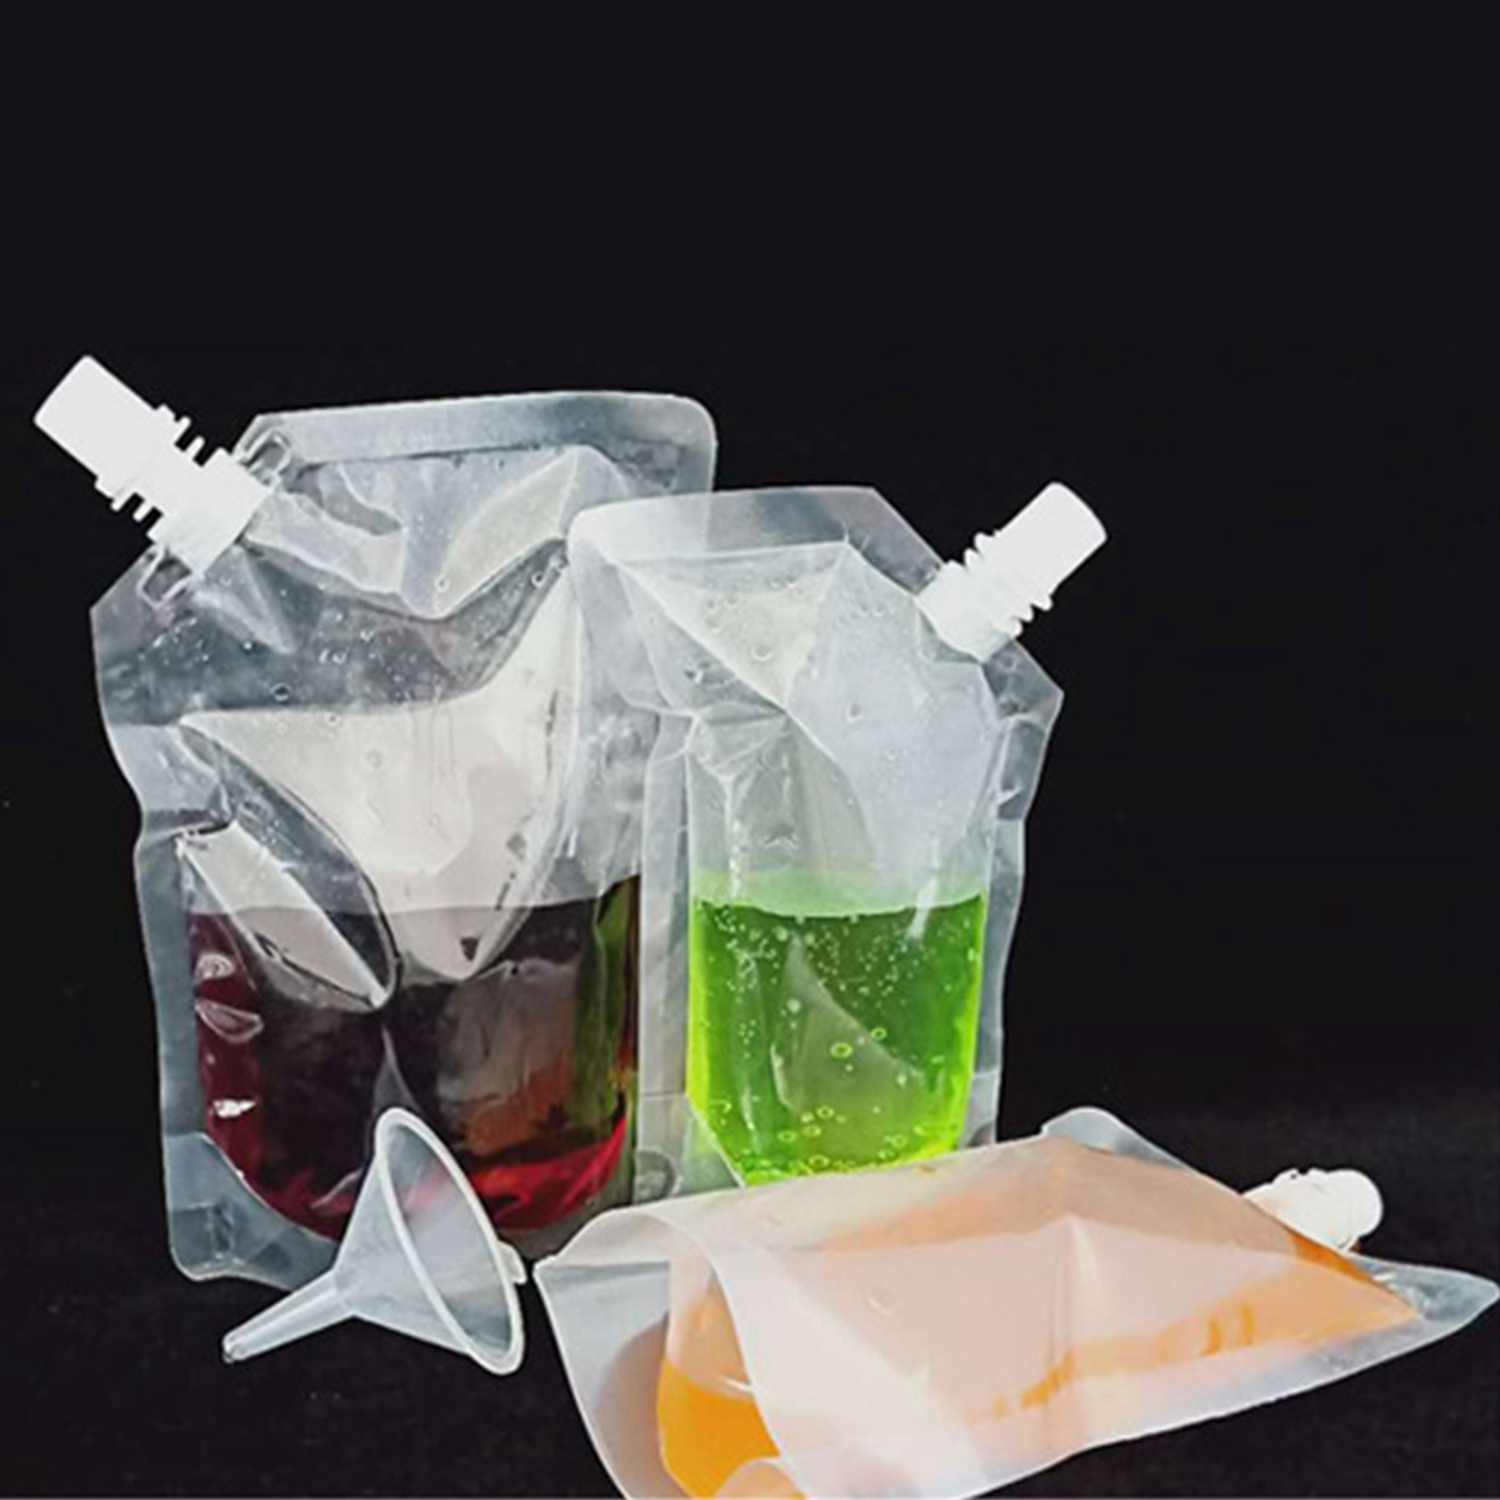 Best 50Pcs Stand-Up Plastic Drink Packaging Bag Spout Pouch For Beverage Liquid Juice Milk Coffee Nozzle Bag Oblique Mouth Dri